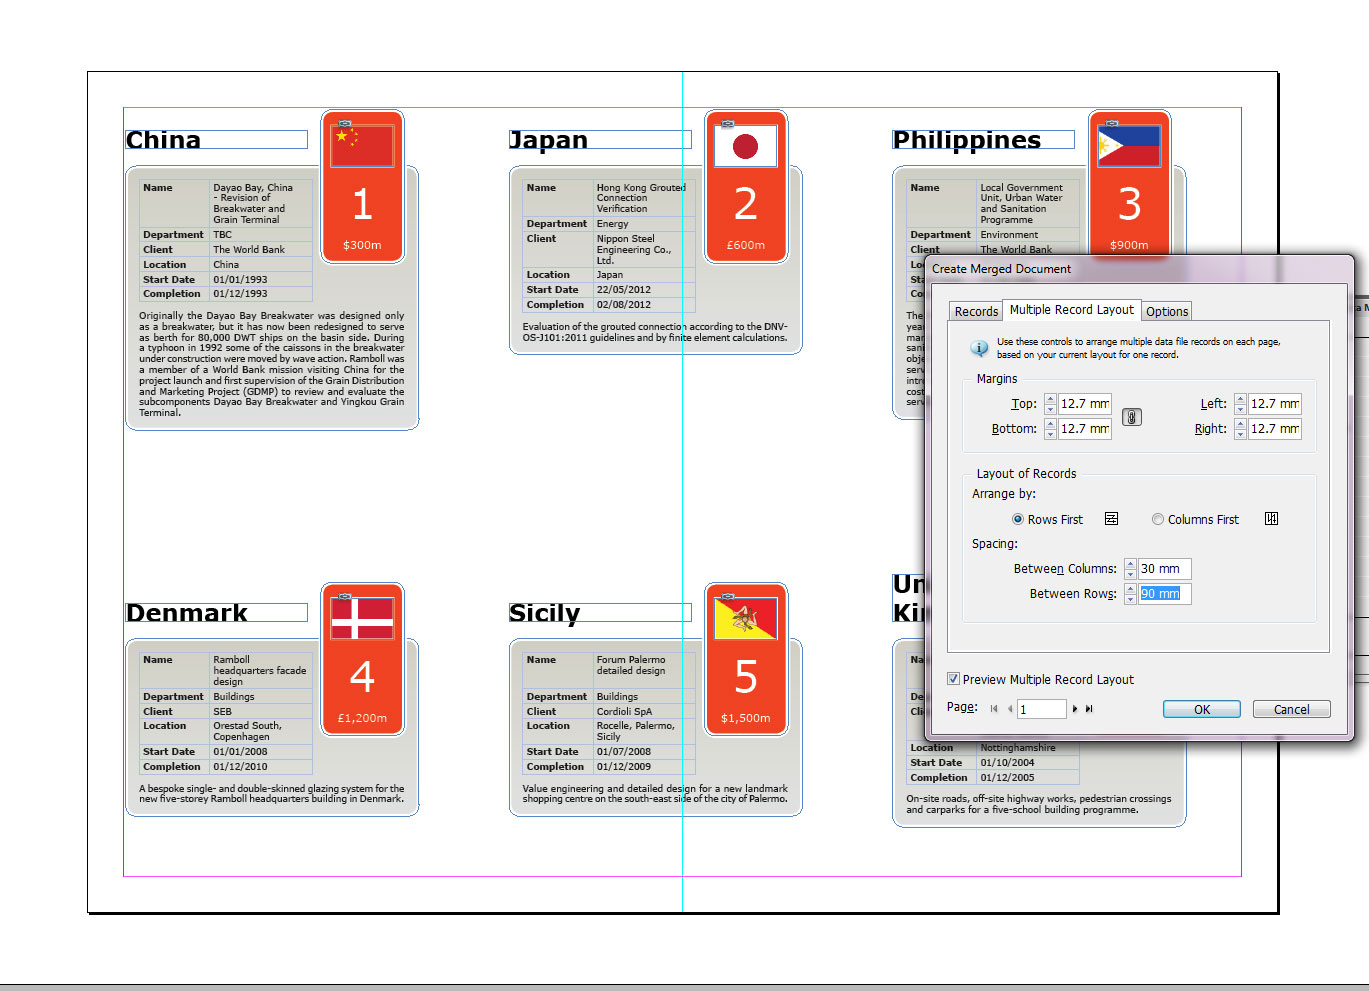 Designing and data merging with multiple records in indesign cs6 or cc grid placement for data merge in indesign cs6 maxwellsz